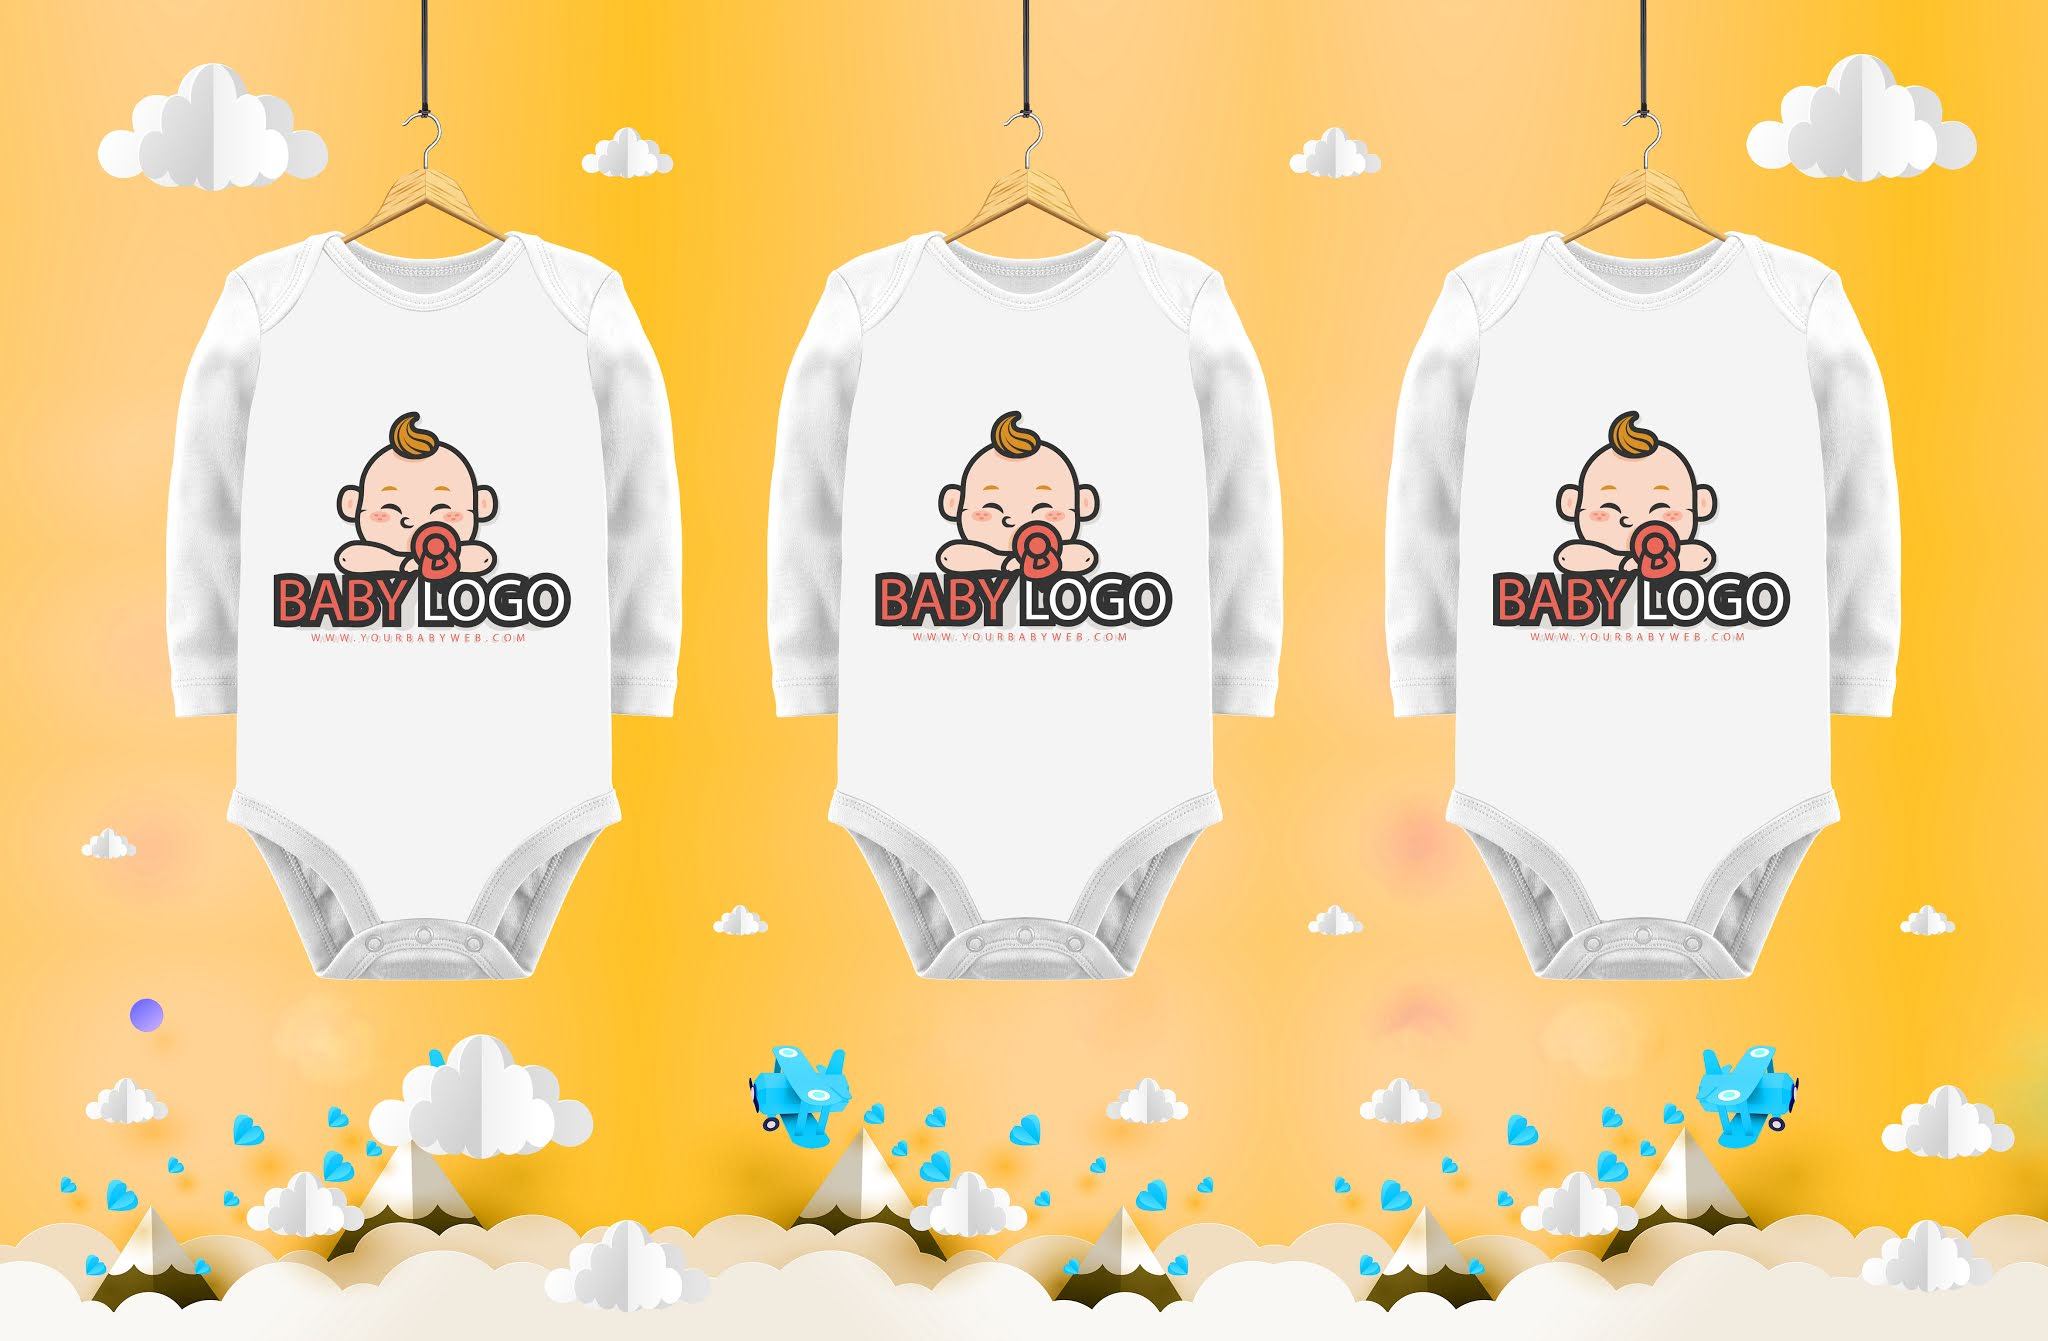 Bag designs psd for printing on children's clothes and T-shirts of the highest quality